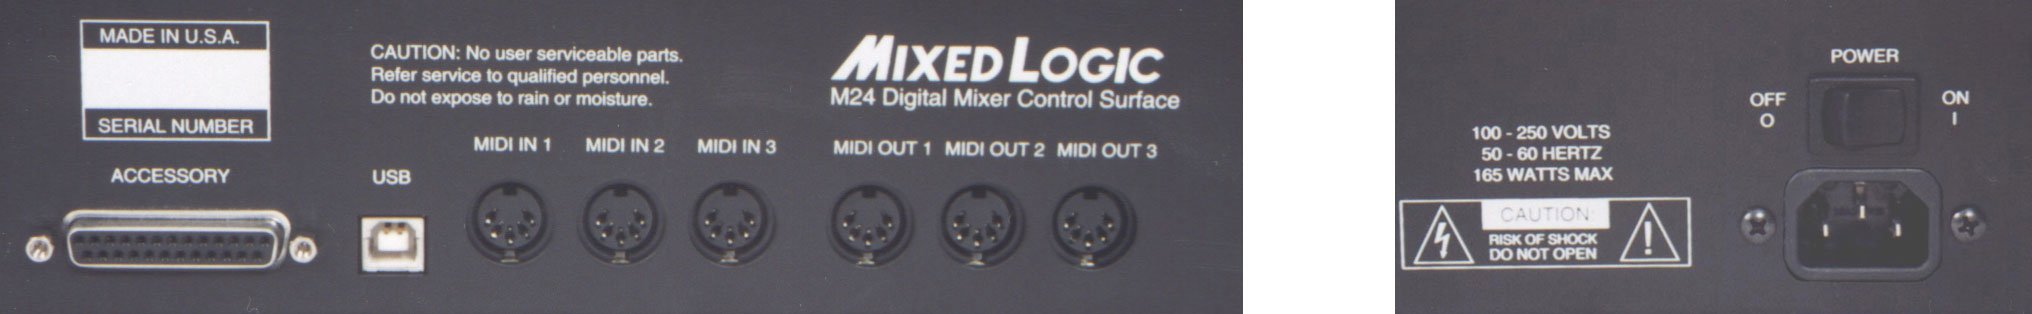 Control Surface, 24-fader